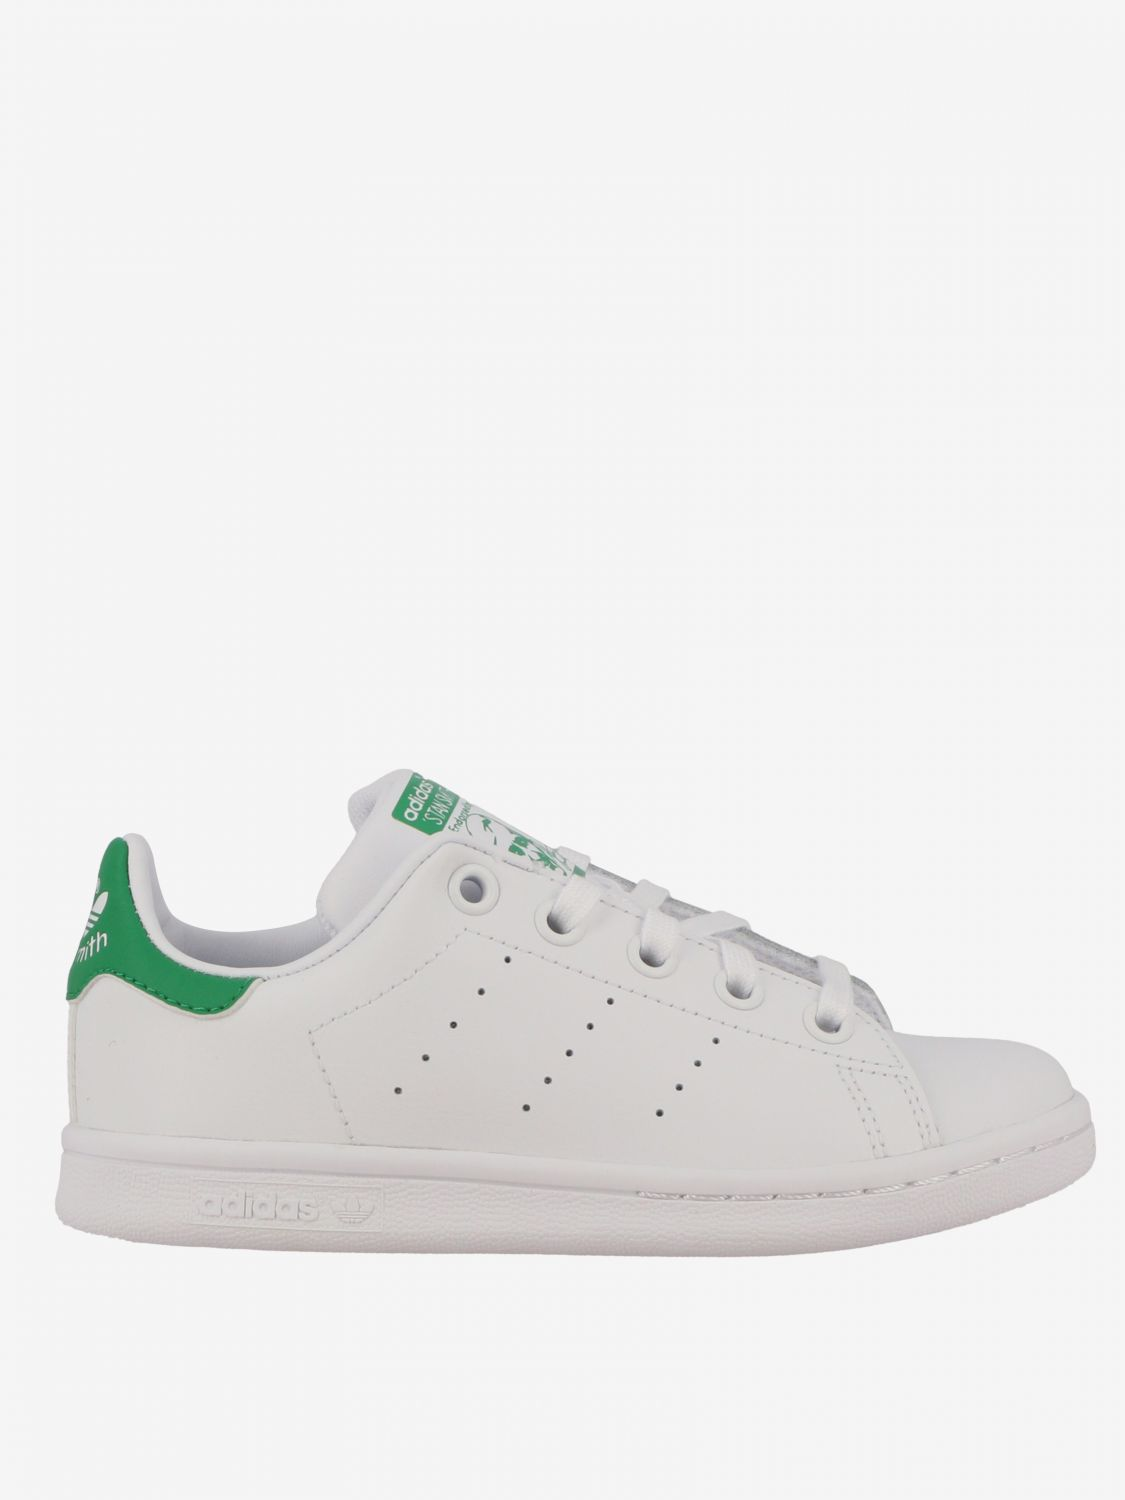 Shoes Adidas Originals: Stan smith Adidas Originals leather sneakers white 1